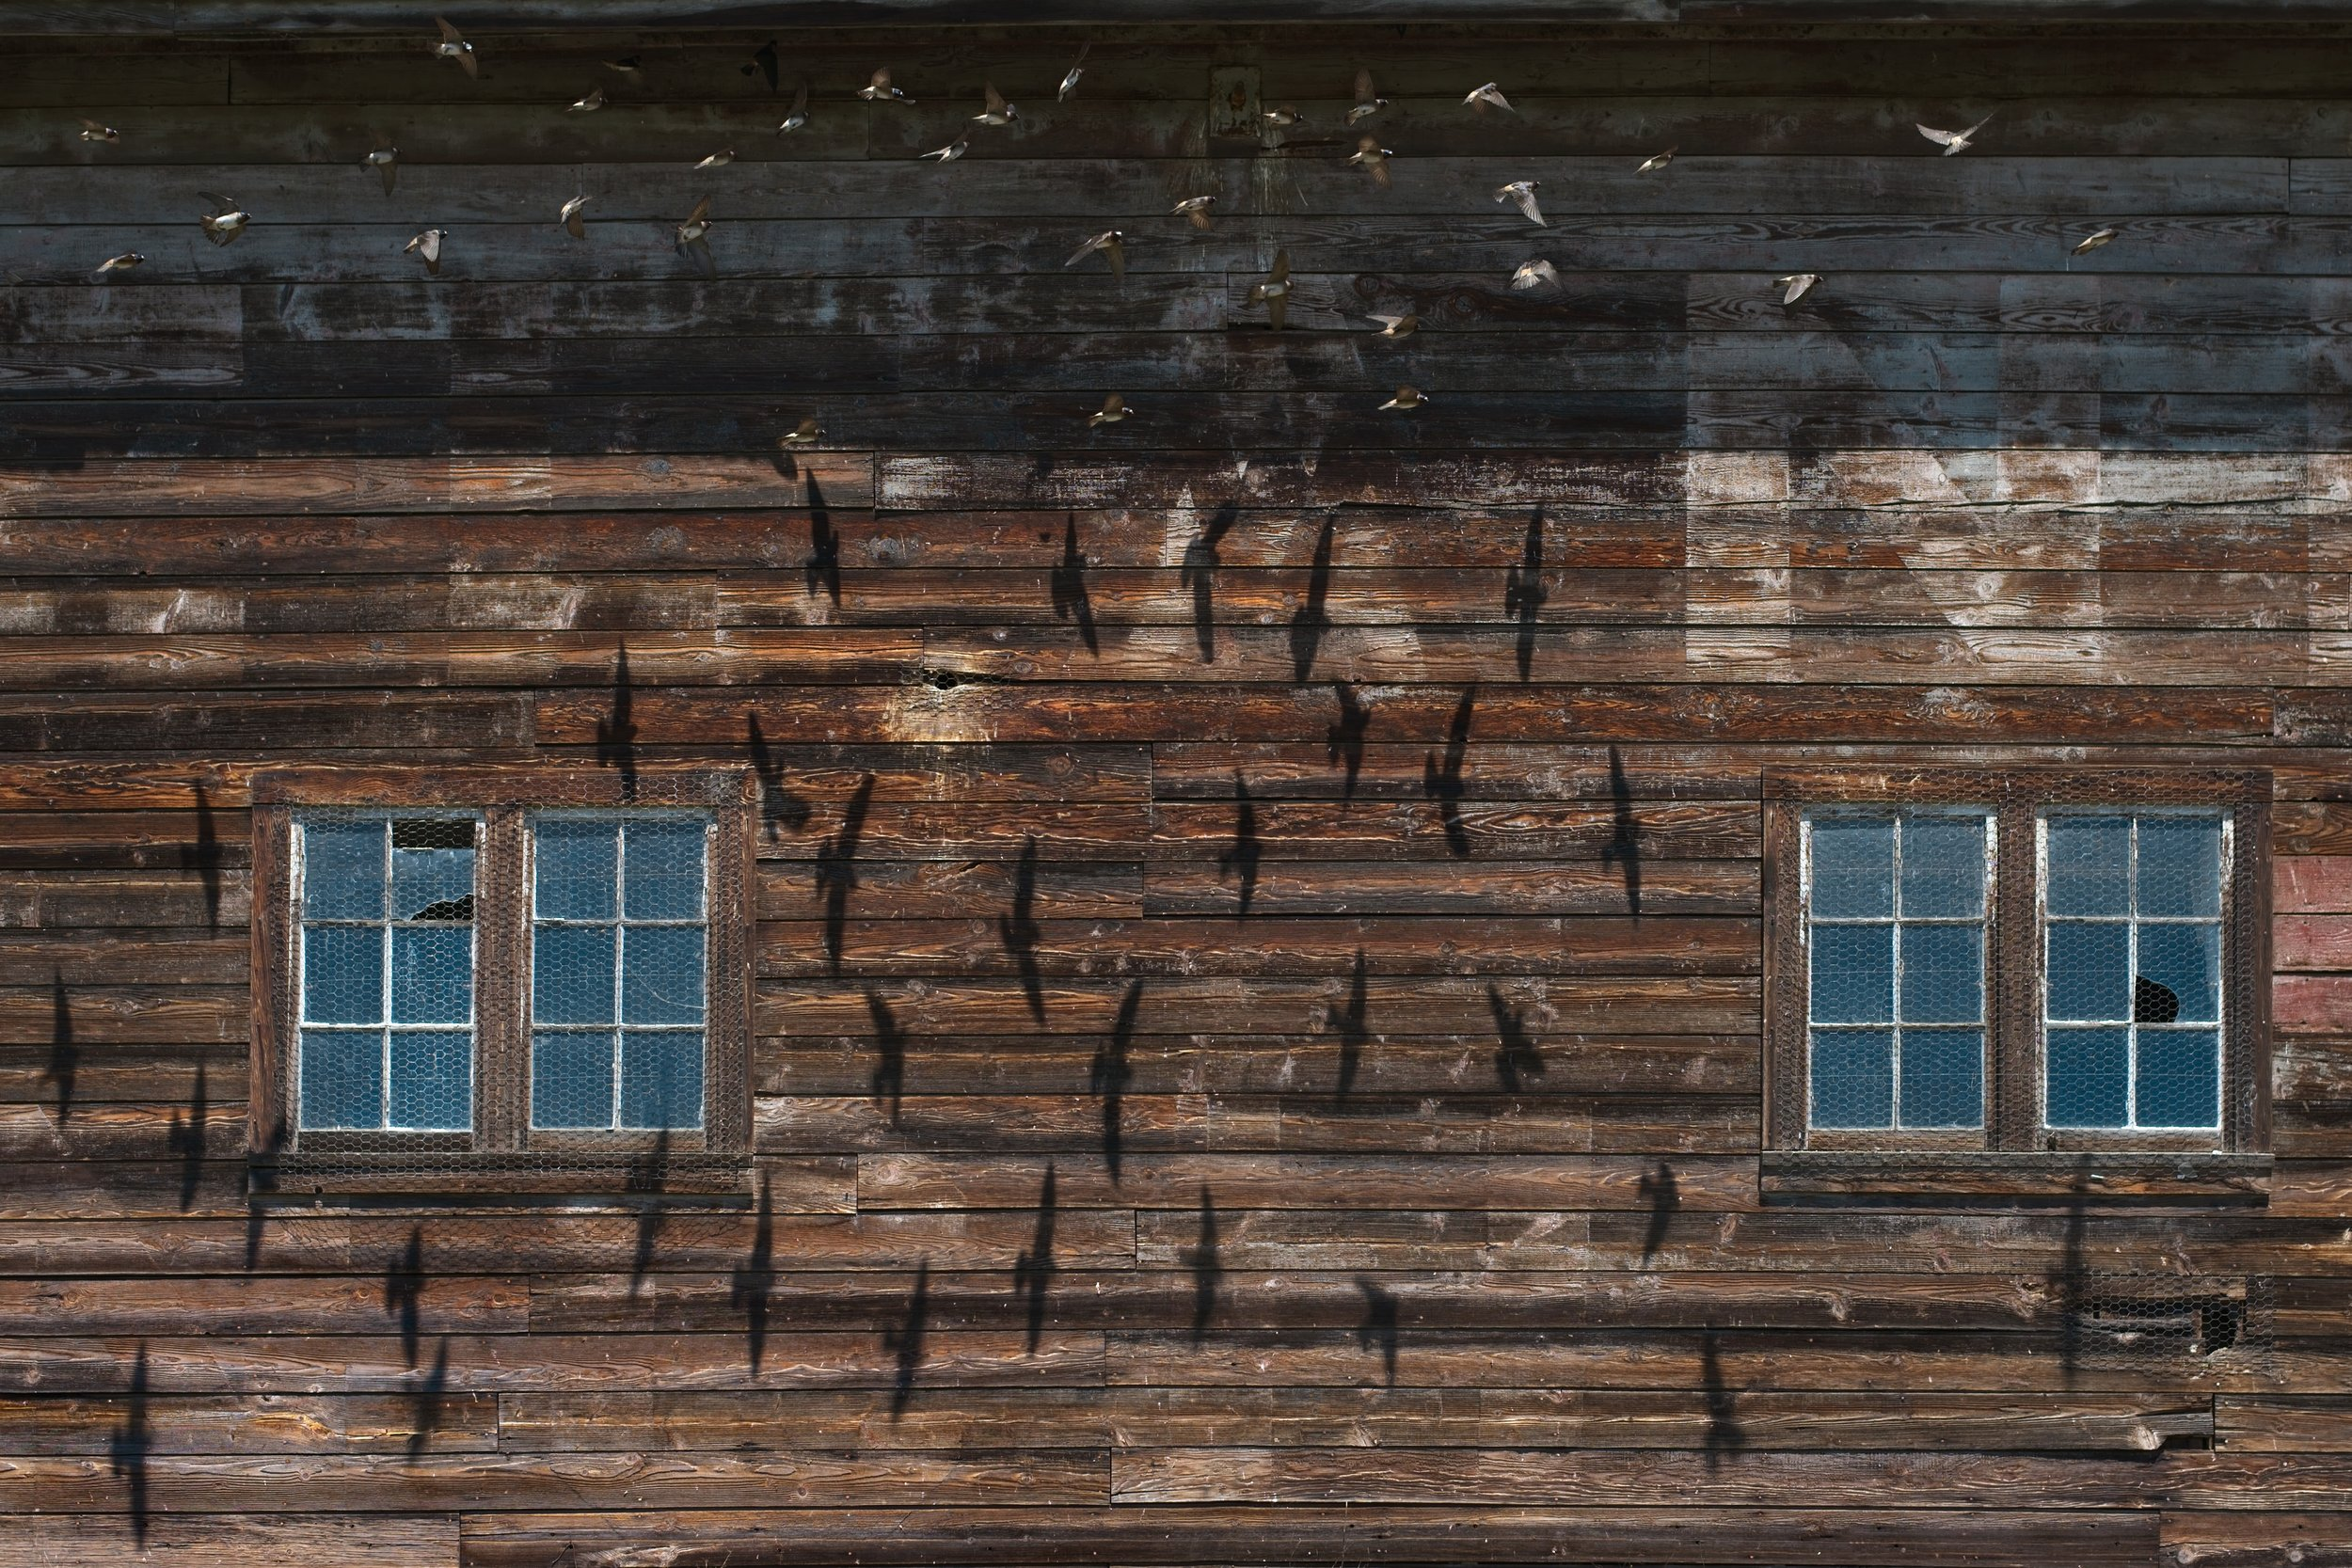 On a road trip to Klickitat County last month, Chan and I drove past this road side barn around noon just outside of Trout Lake, Washington. It was hard to miss the large, darting shadows of the many cliff swallows – sometimes 15 or more at a time - that animated the barn wall. It was a unique and thrilling sight!  Chan patiently sat in the hot car for 20 minutes as I tried to get a good picture, but when I got home, I was disappointed with the results. I had shot it at too slow a shutter speed and should have used my tripod.  So, the following week, I drove the 90 miles back out to the barn, waited for the mid-day sun to be in the right position again for the swallows to cast shadows, setup my tripod and sat under a camouflage burlap cover-up for an hour and a half, shooting over 200 shots.  The swallows threw shadows only when they flew about 2-3 feet from the wall and only at mid-day. They also came-and-went, with long periods of sometimes only a single bird or no birds at all.  This is the hardest I've worked for a photo in a long time, but it sure was fun.